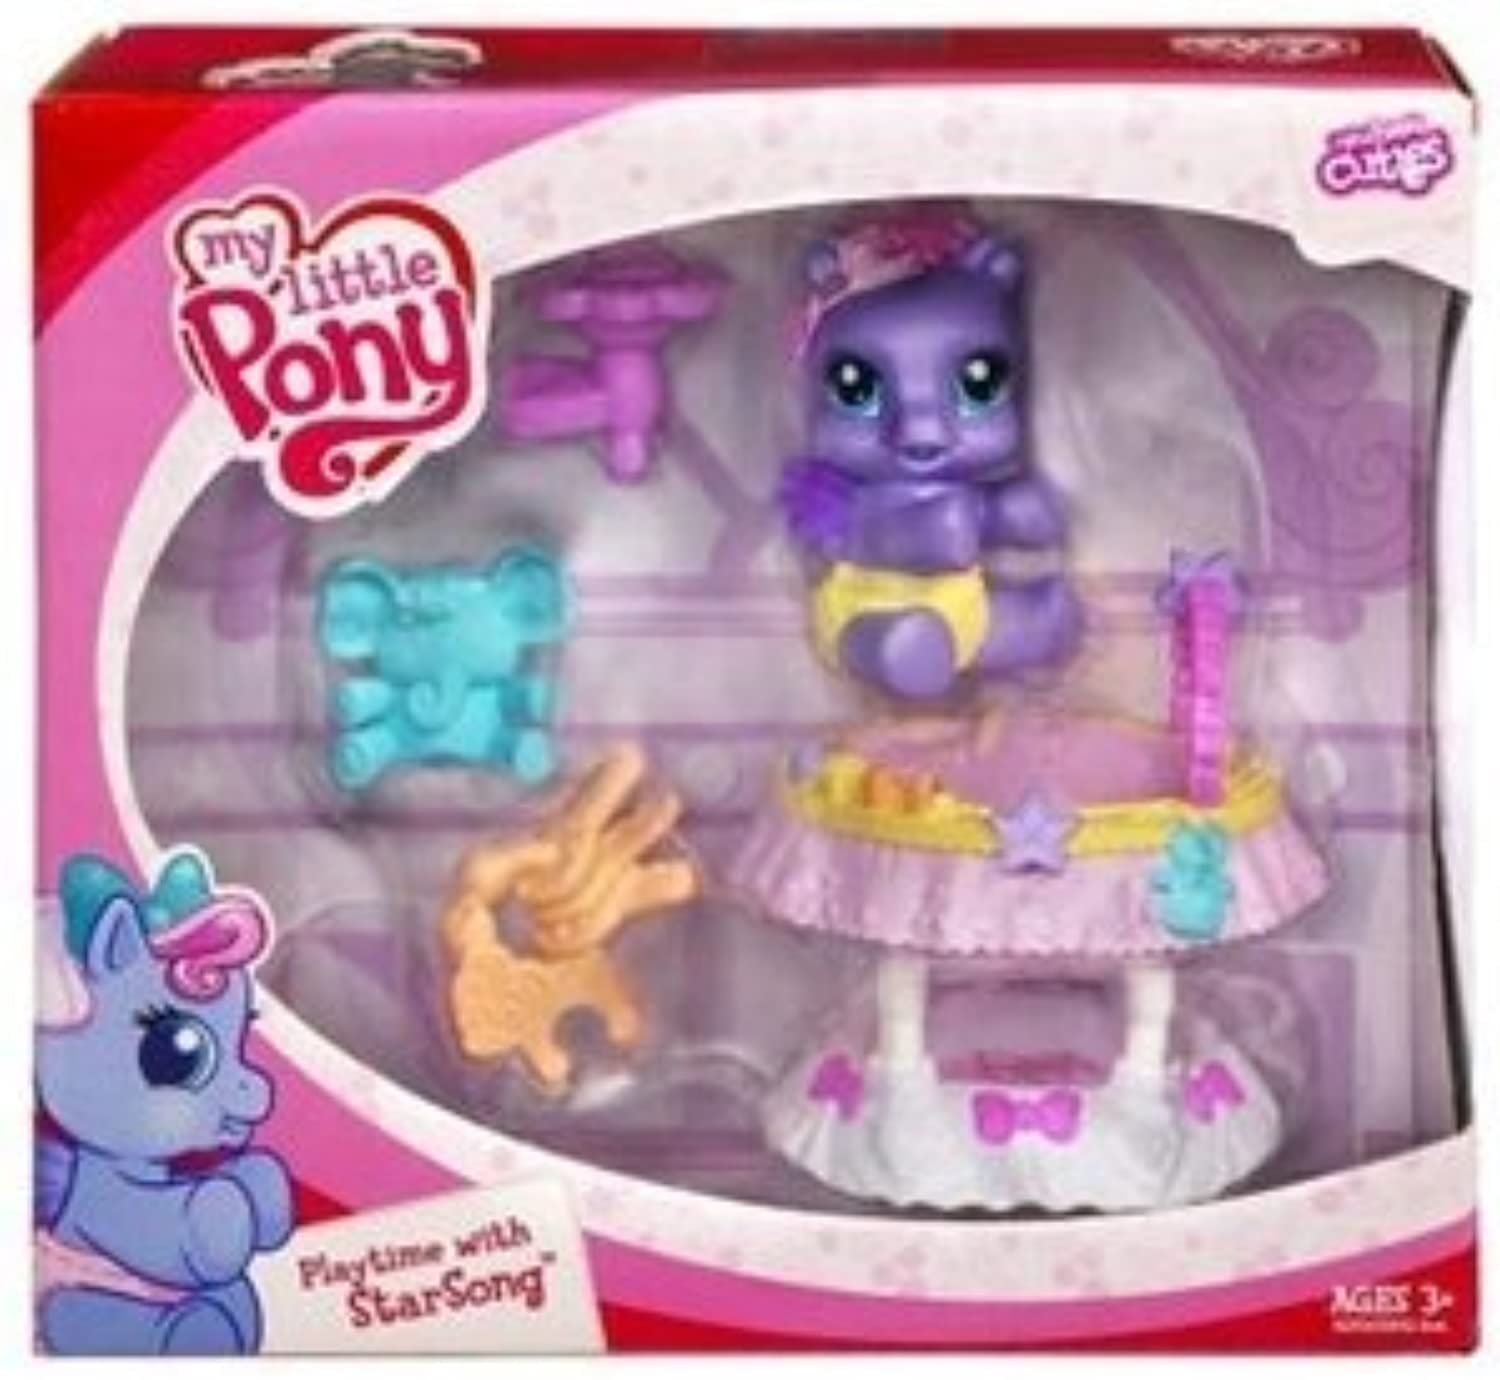 My Little Pony - Playtime with Starsong